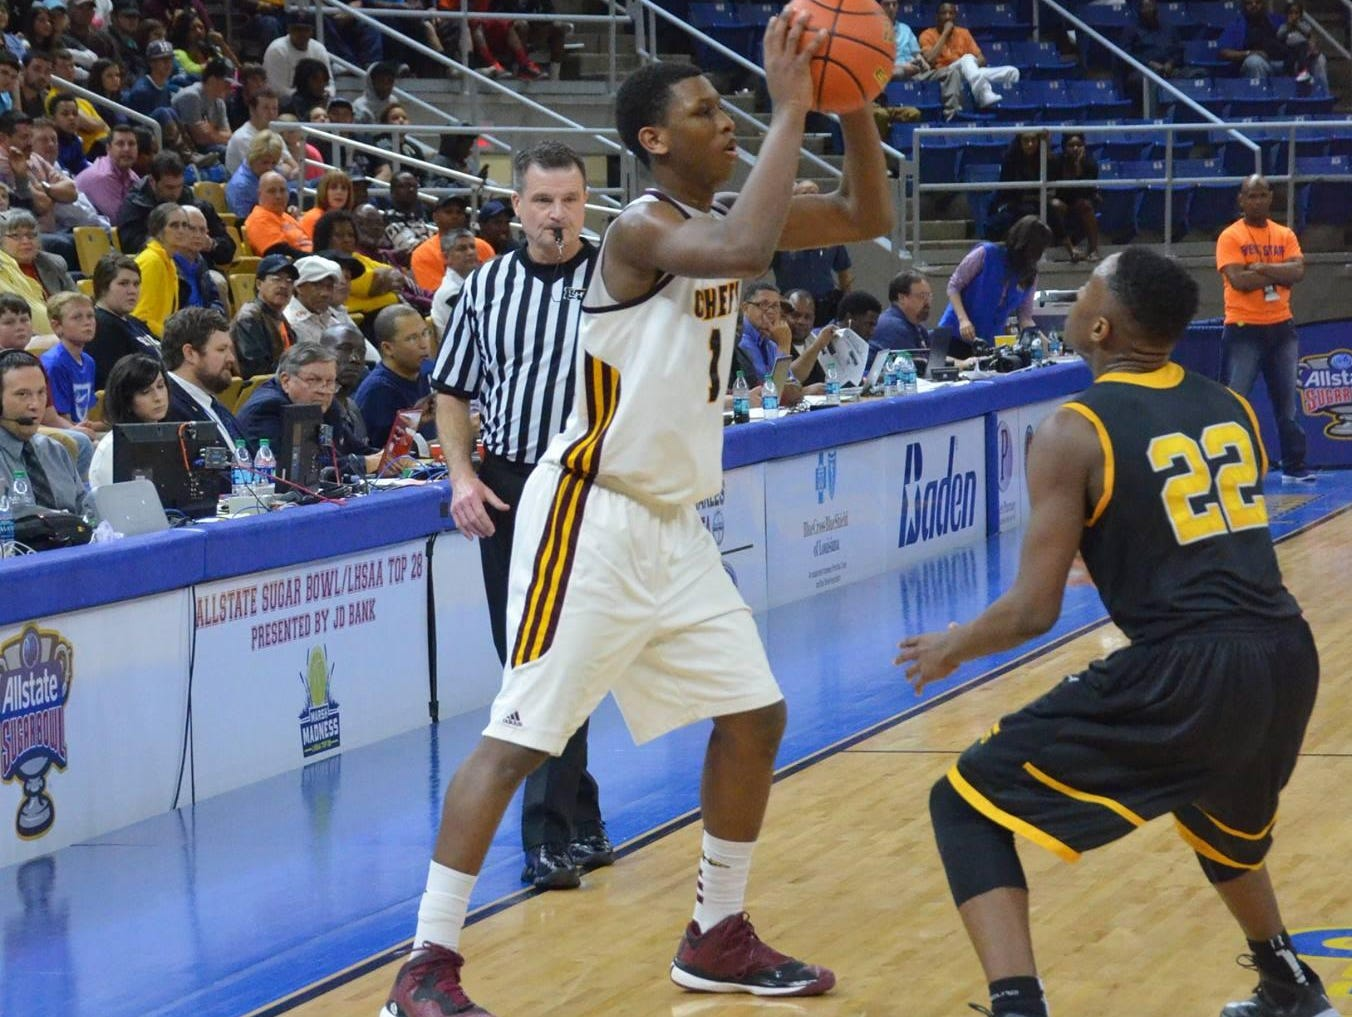 Natchitoches Central forward Brandon Rachal (1, left) is guarded by Scotlandville's Jordan Adebutu during the LHSAA Class 5A Finals in March. Rachal and Adebutu are playing for Elfrid Payton Elite this summer.